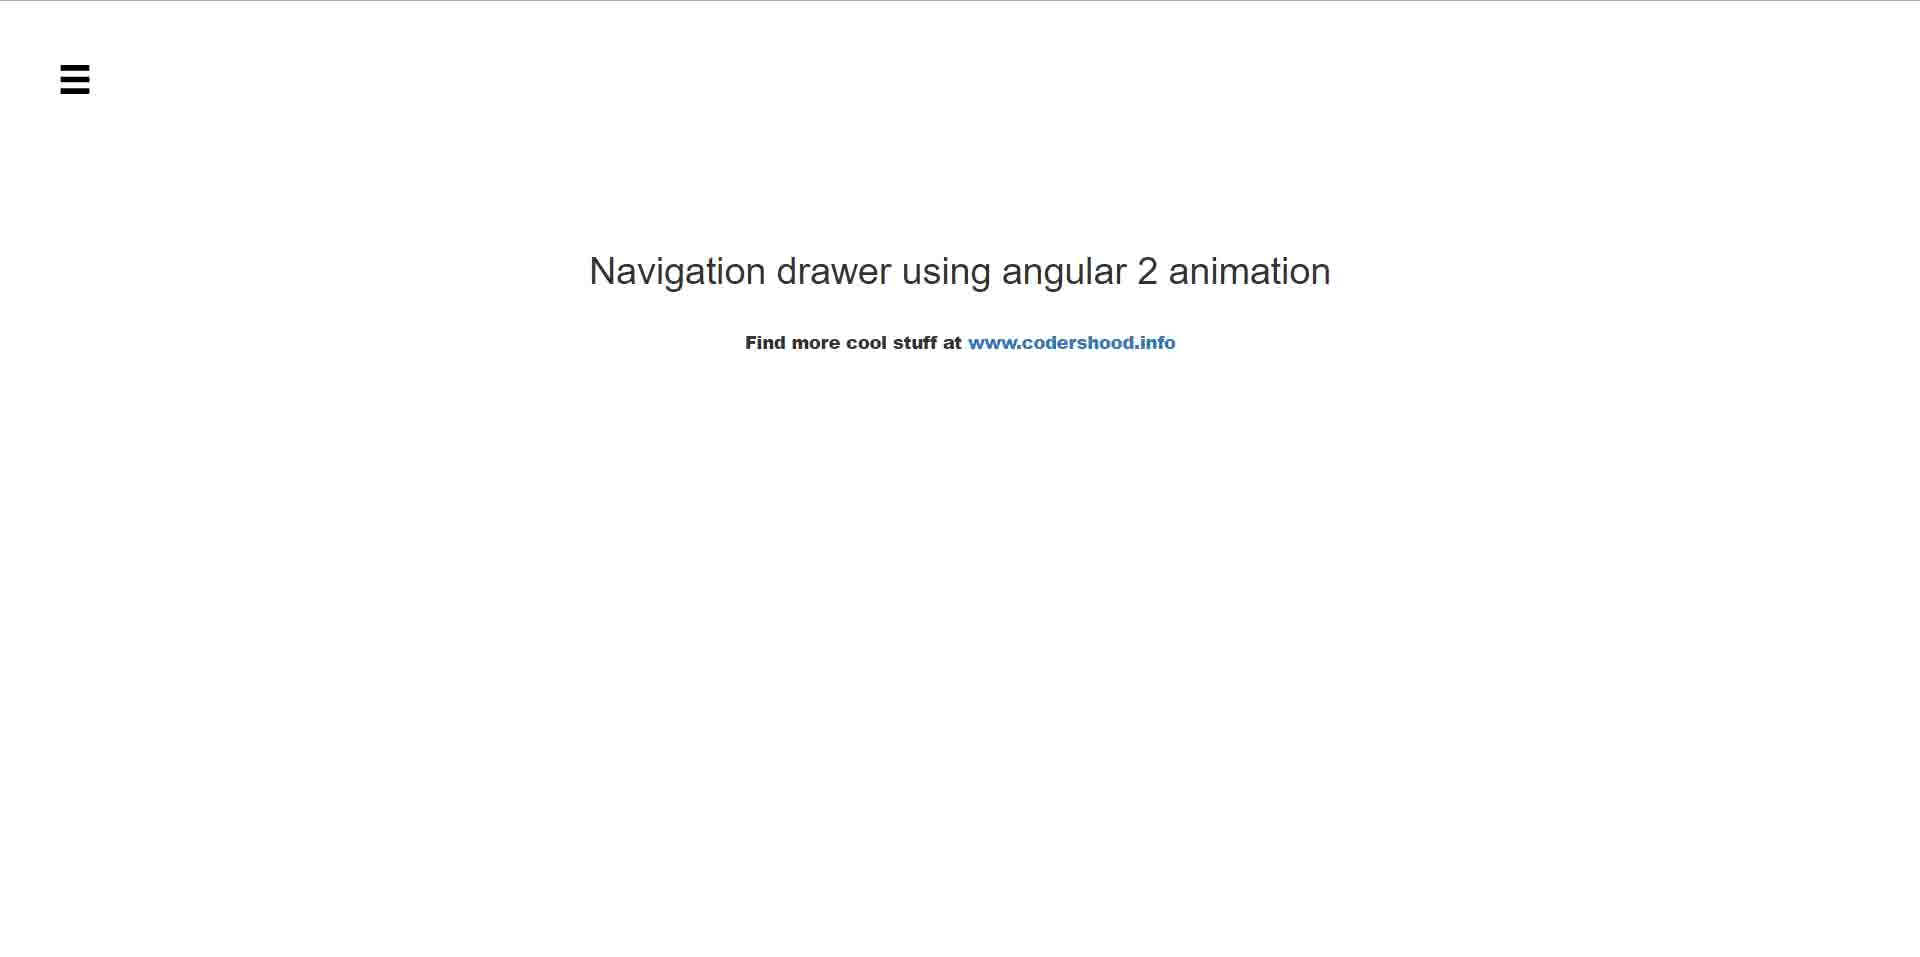 Navigation drawer using angular 4 animation